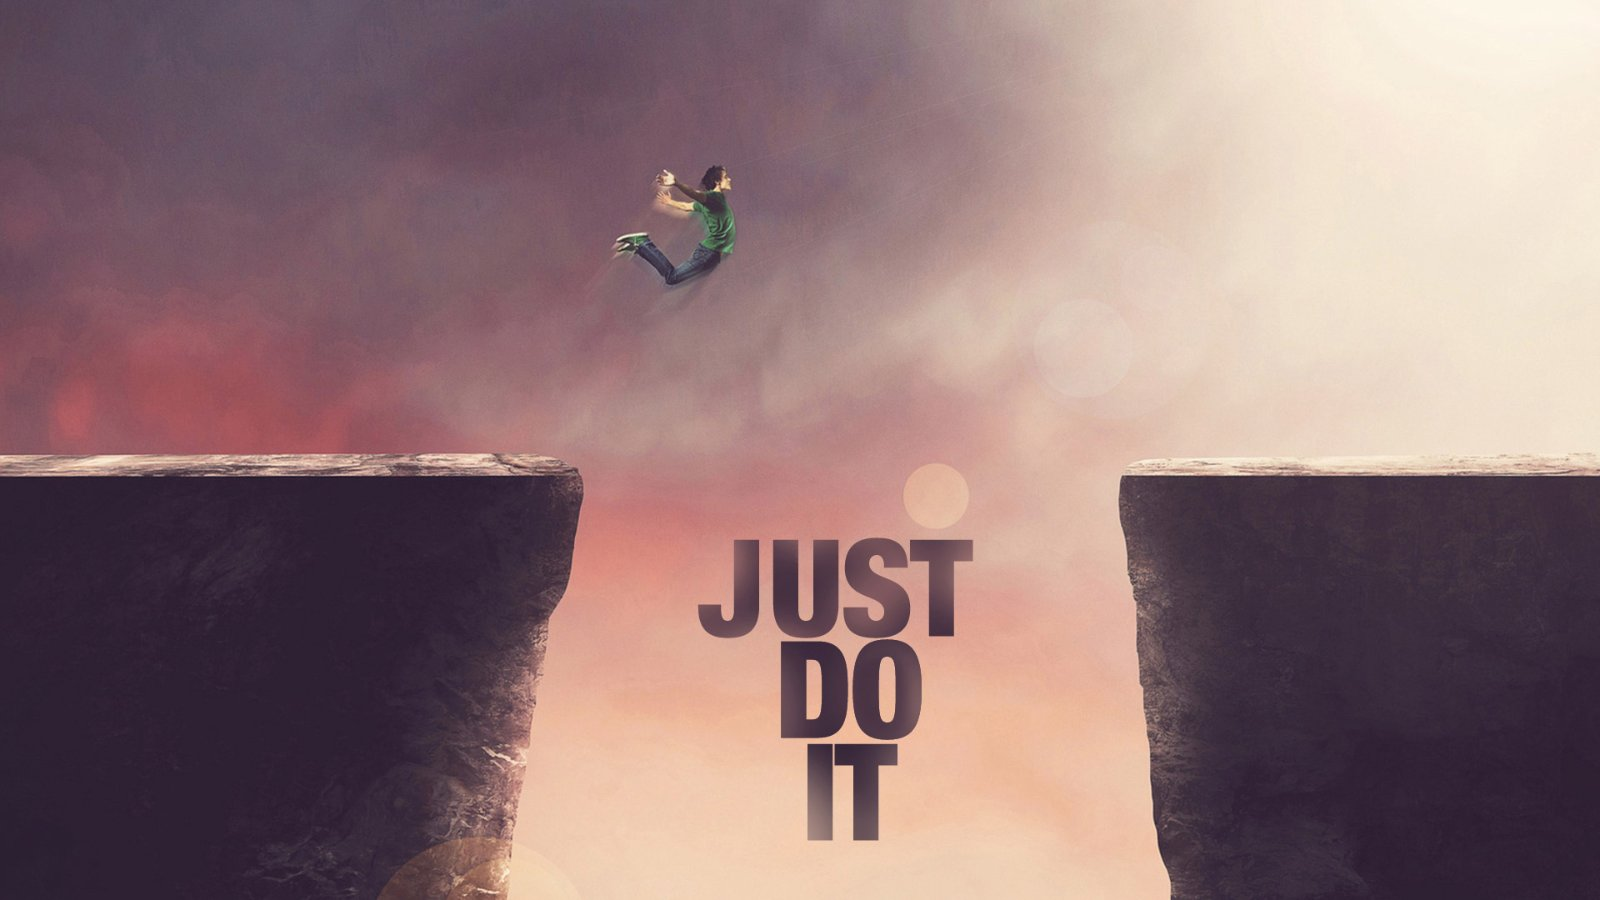 Dream Quotes Wallpaper 1080p Just Do It Wallpapers High Quality Download Free